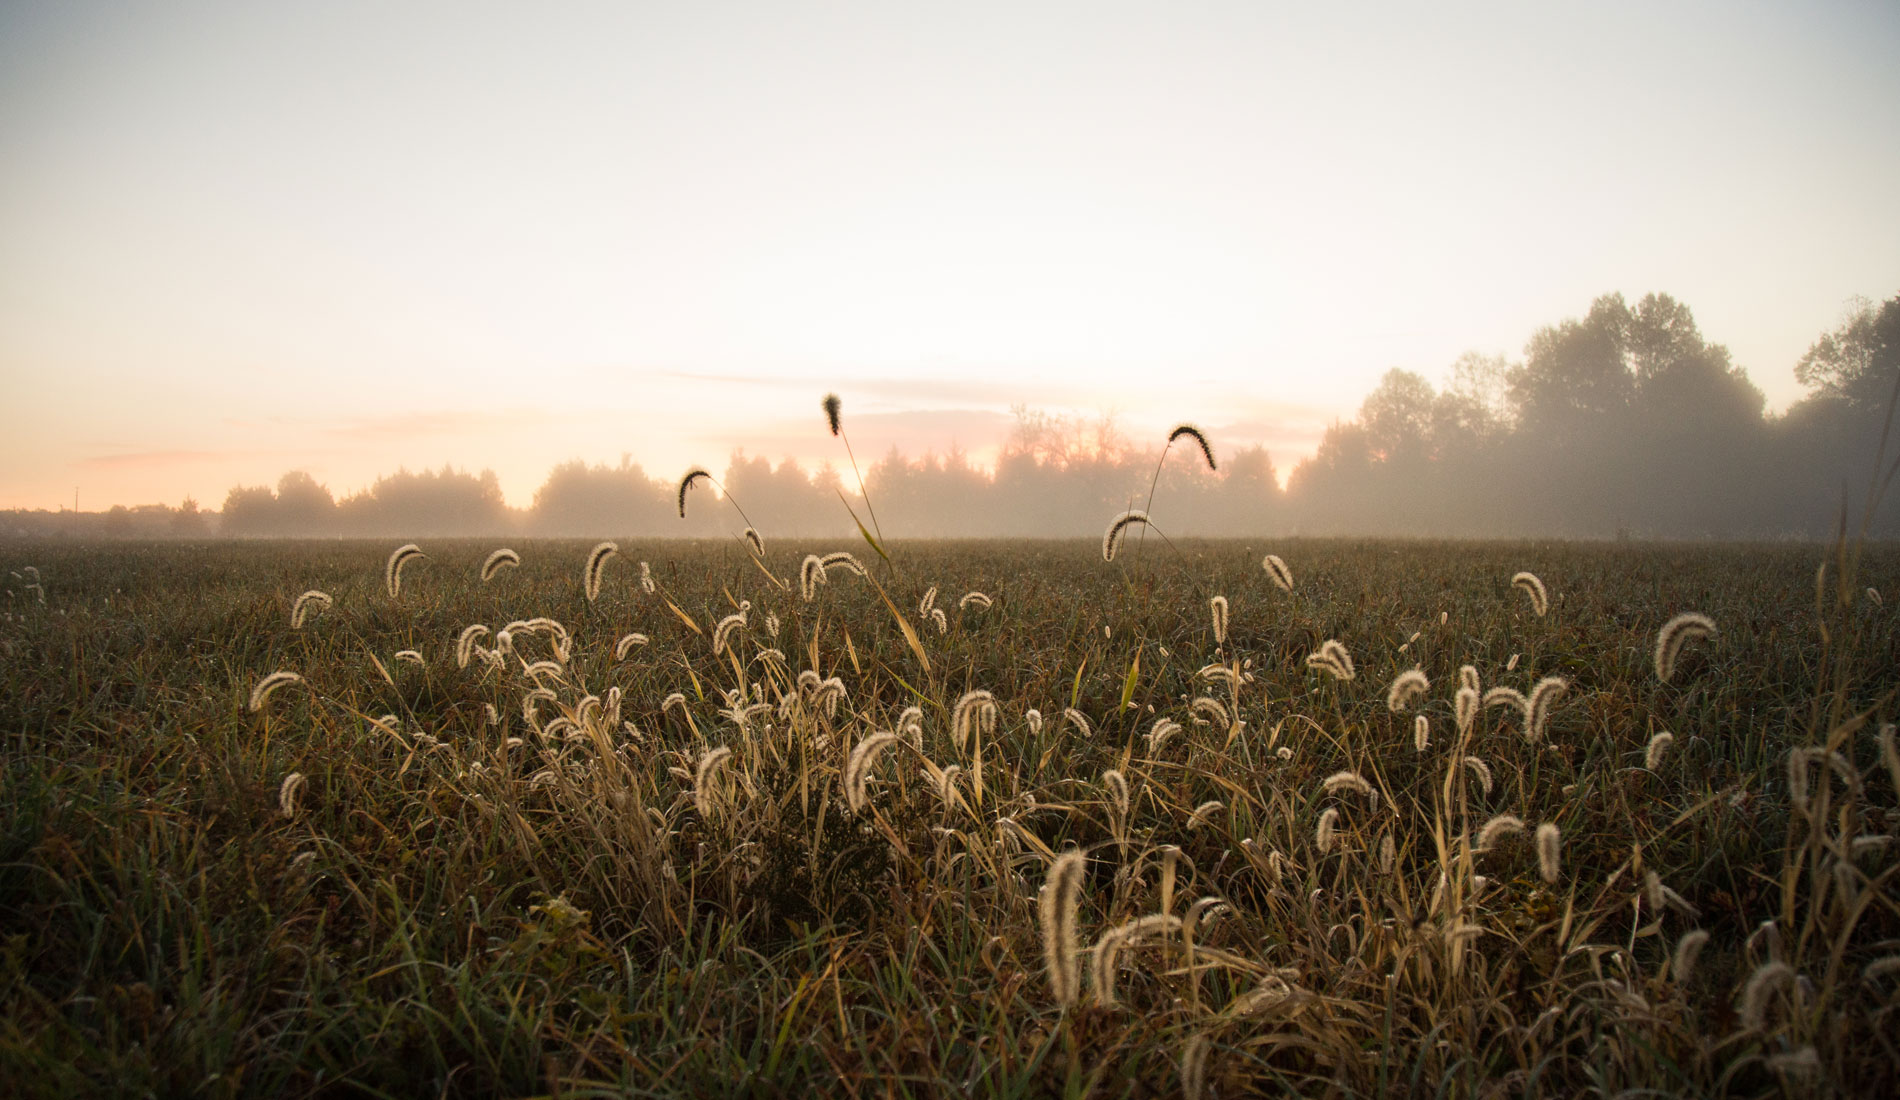 Wedding & Lifestyle Photography, landscape shot of field with tall grass